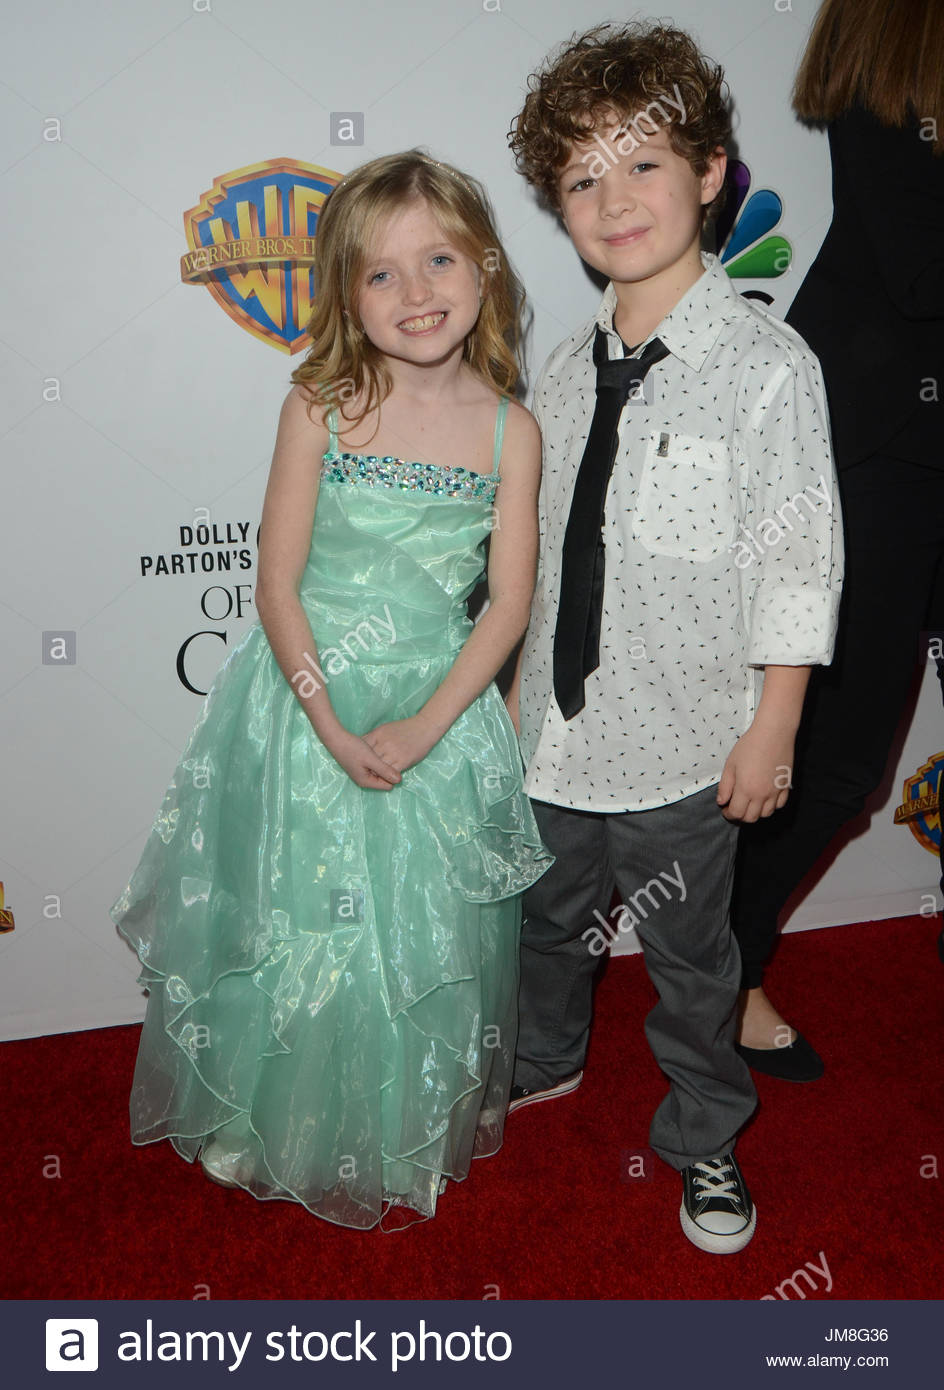 Farrah Mackenzie and Blane Crockarell. Arrivals at the Premiere Of Warner Bros. Television's 'Dolly Parton's - Stock Image